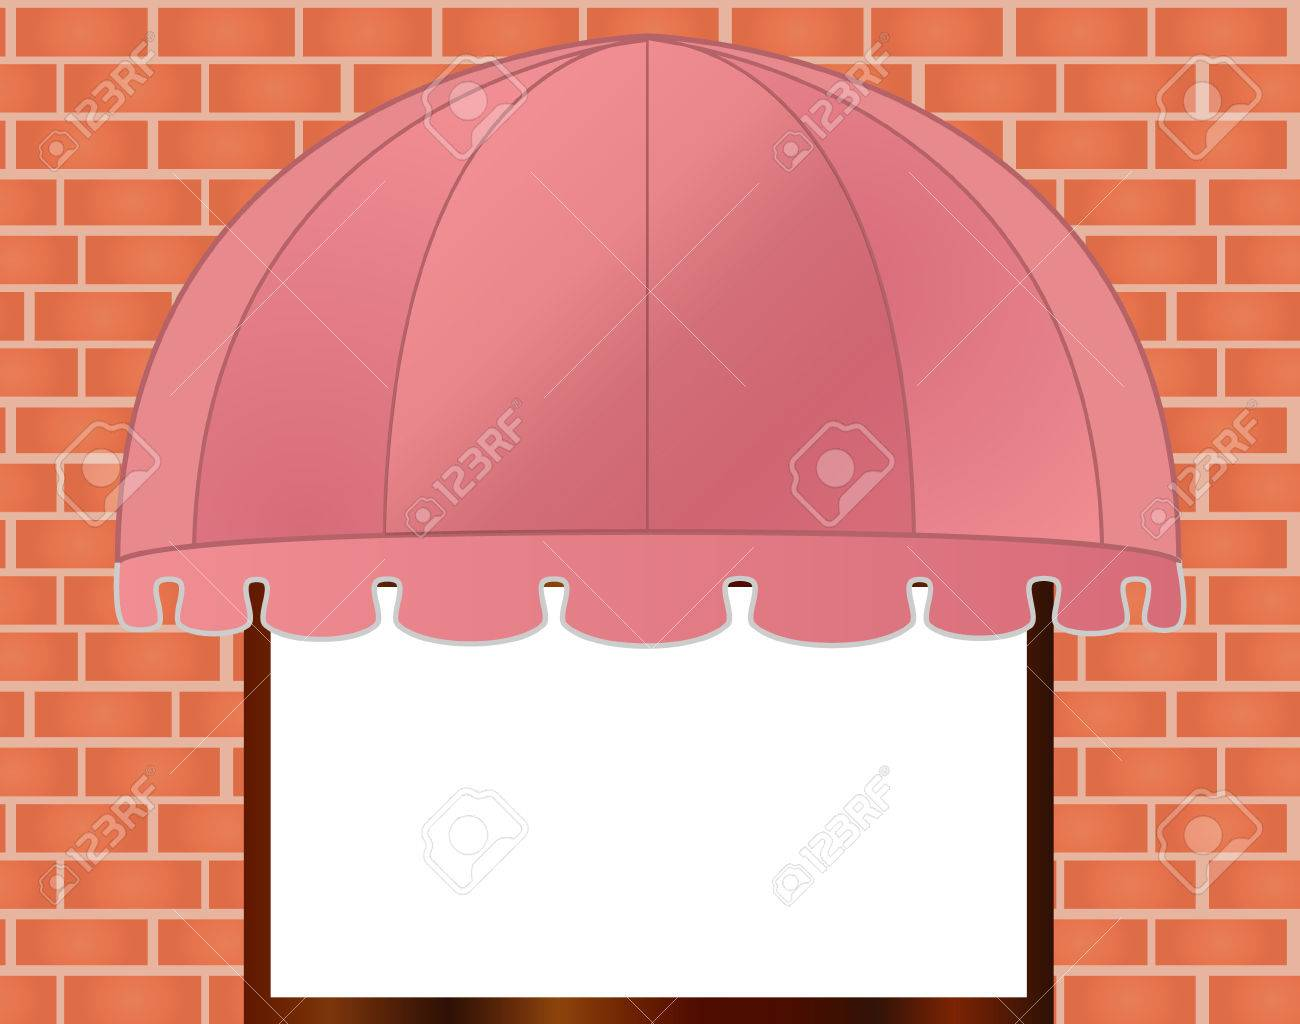 illustration of  Storefront Awning in reddish pink Stock Vector - 7998058